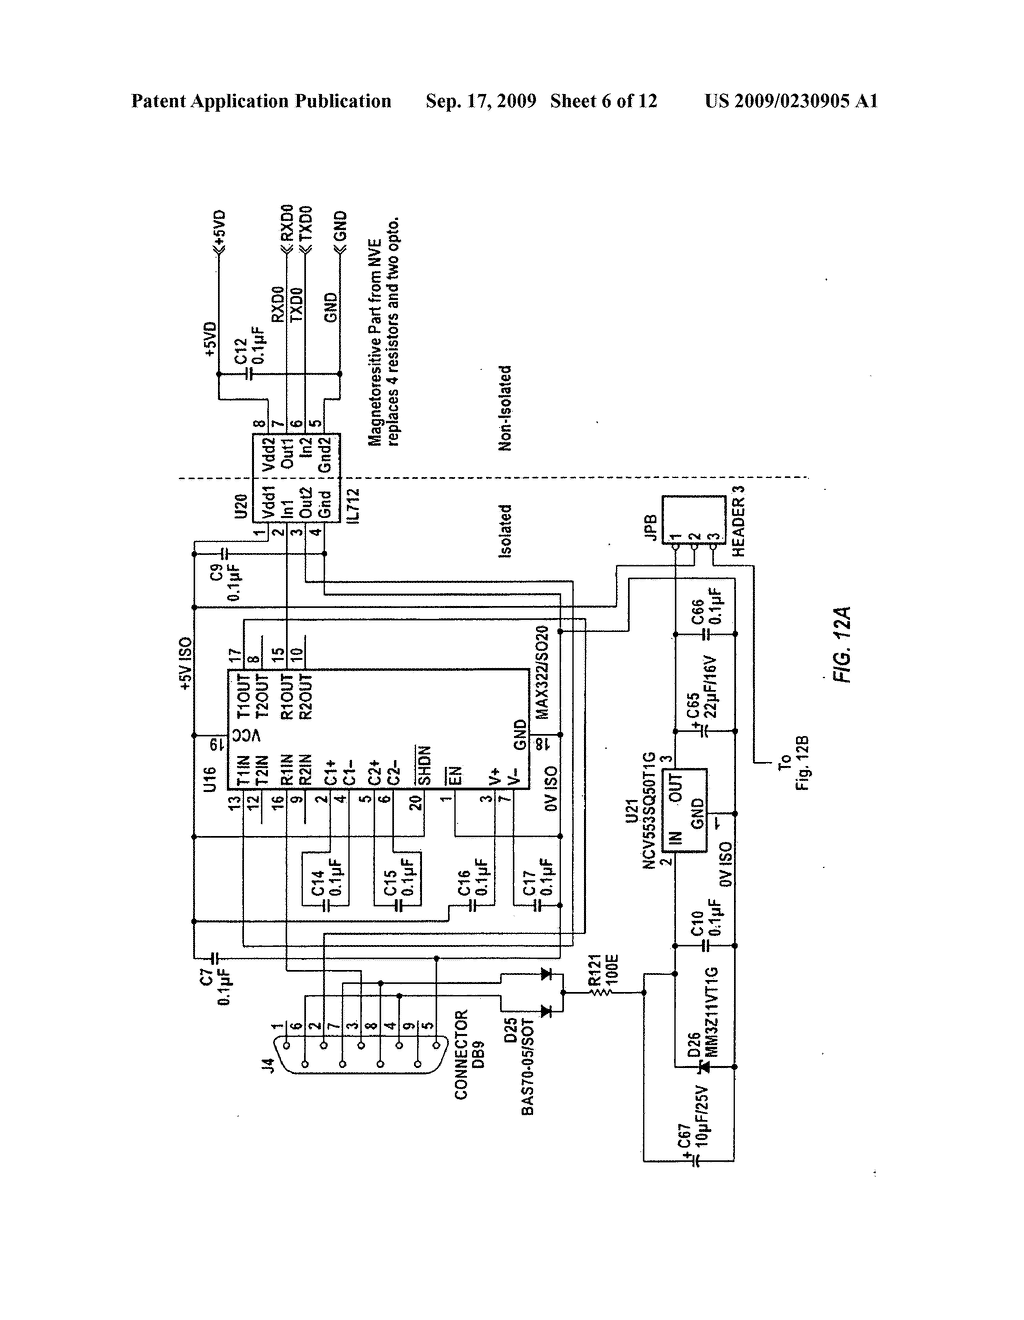 Back Electro Motive Force Bemf Commutation And Speed Control Of A Brushless Electric Motor Diagram Threephase Dc With Three Phase Bldc Schematic Image 07